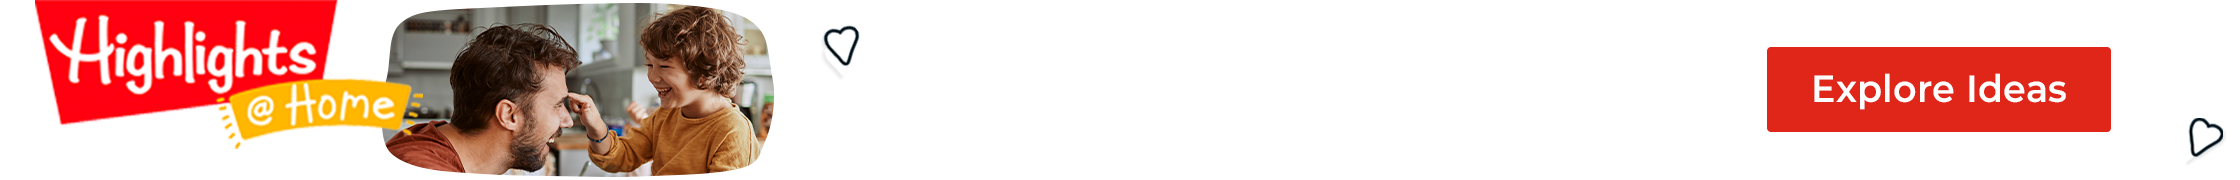 Get free family activities and inspiration every week from Highlights at Home!